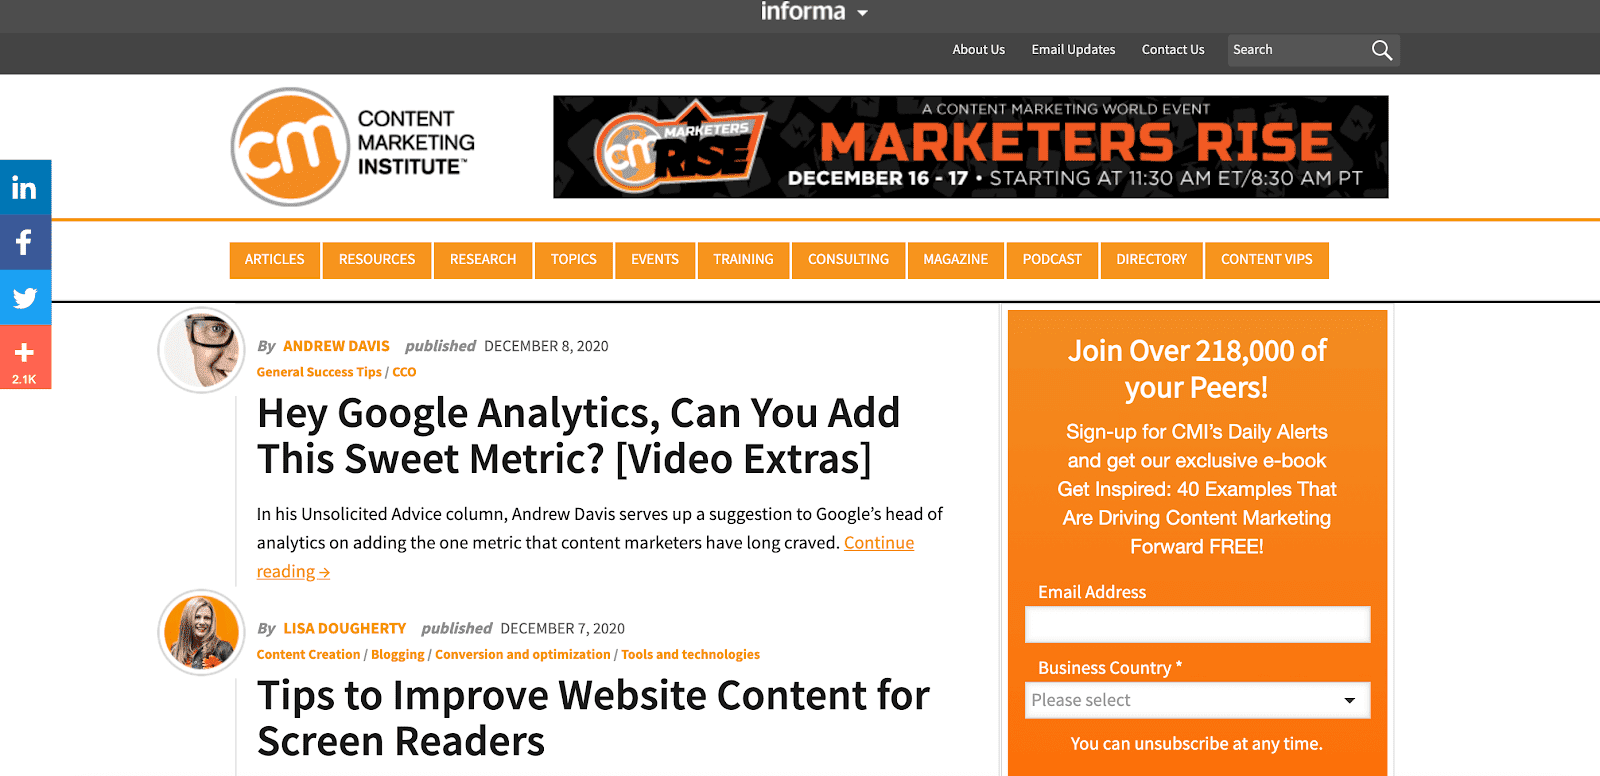 Content Marketing Institute blog page